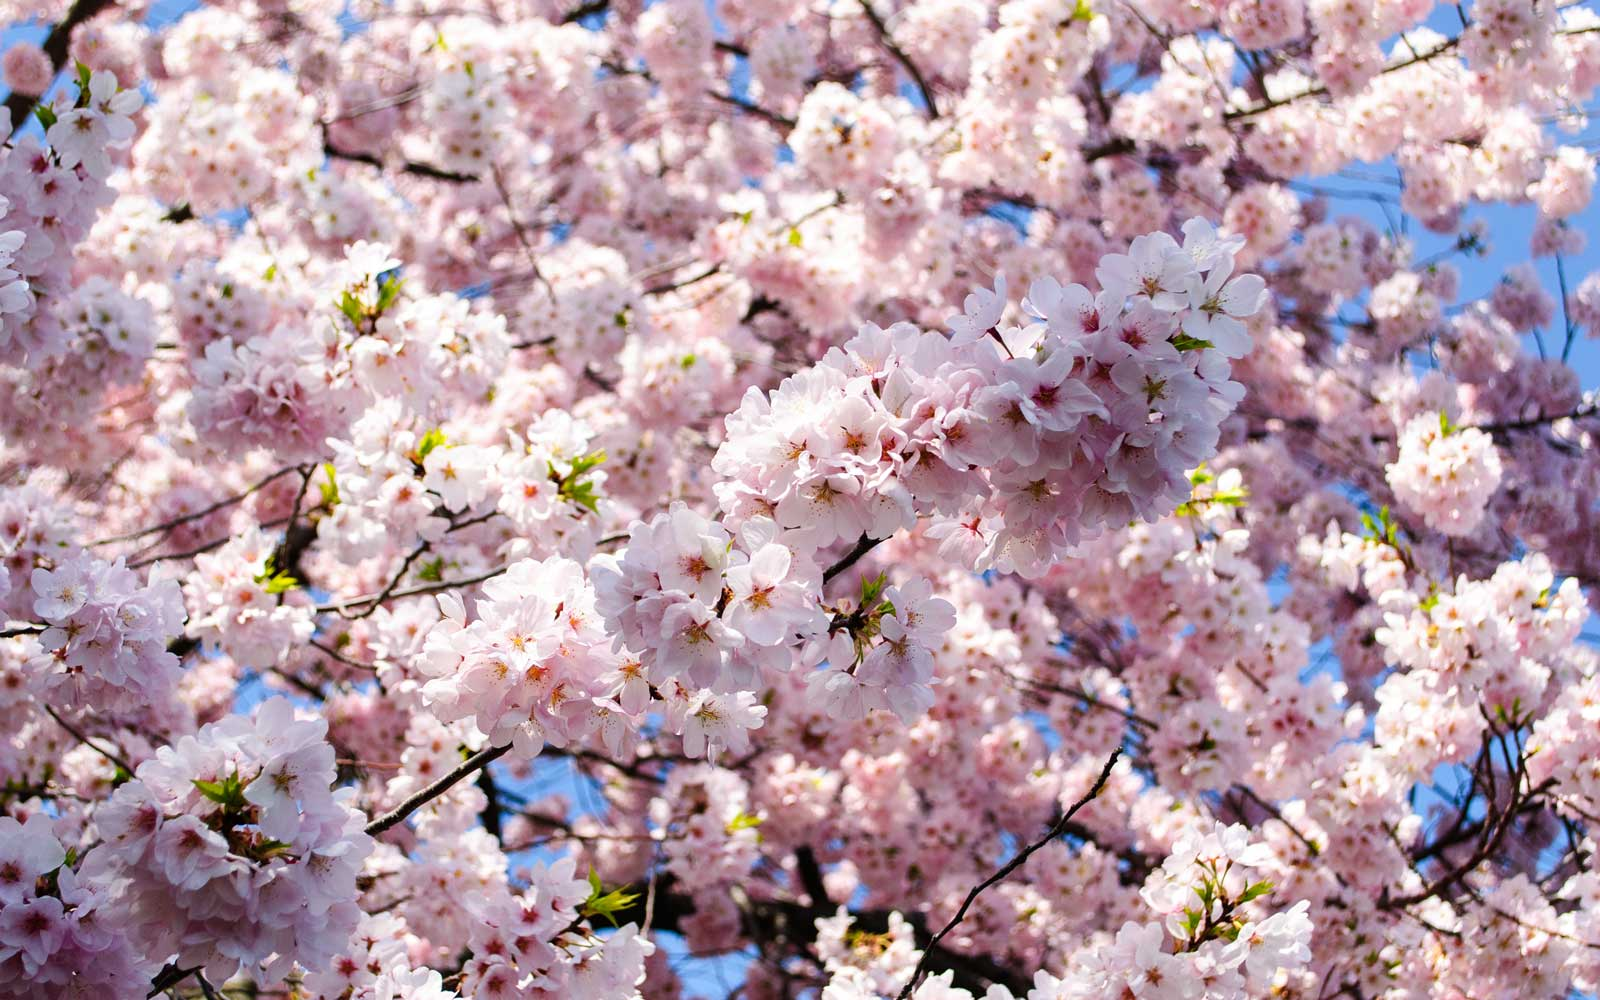 Here's When to Catch Cherry Blossoms in All Their Glory in D.C. This Year